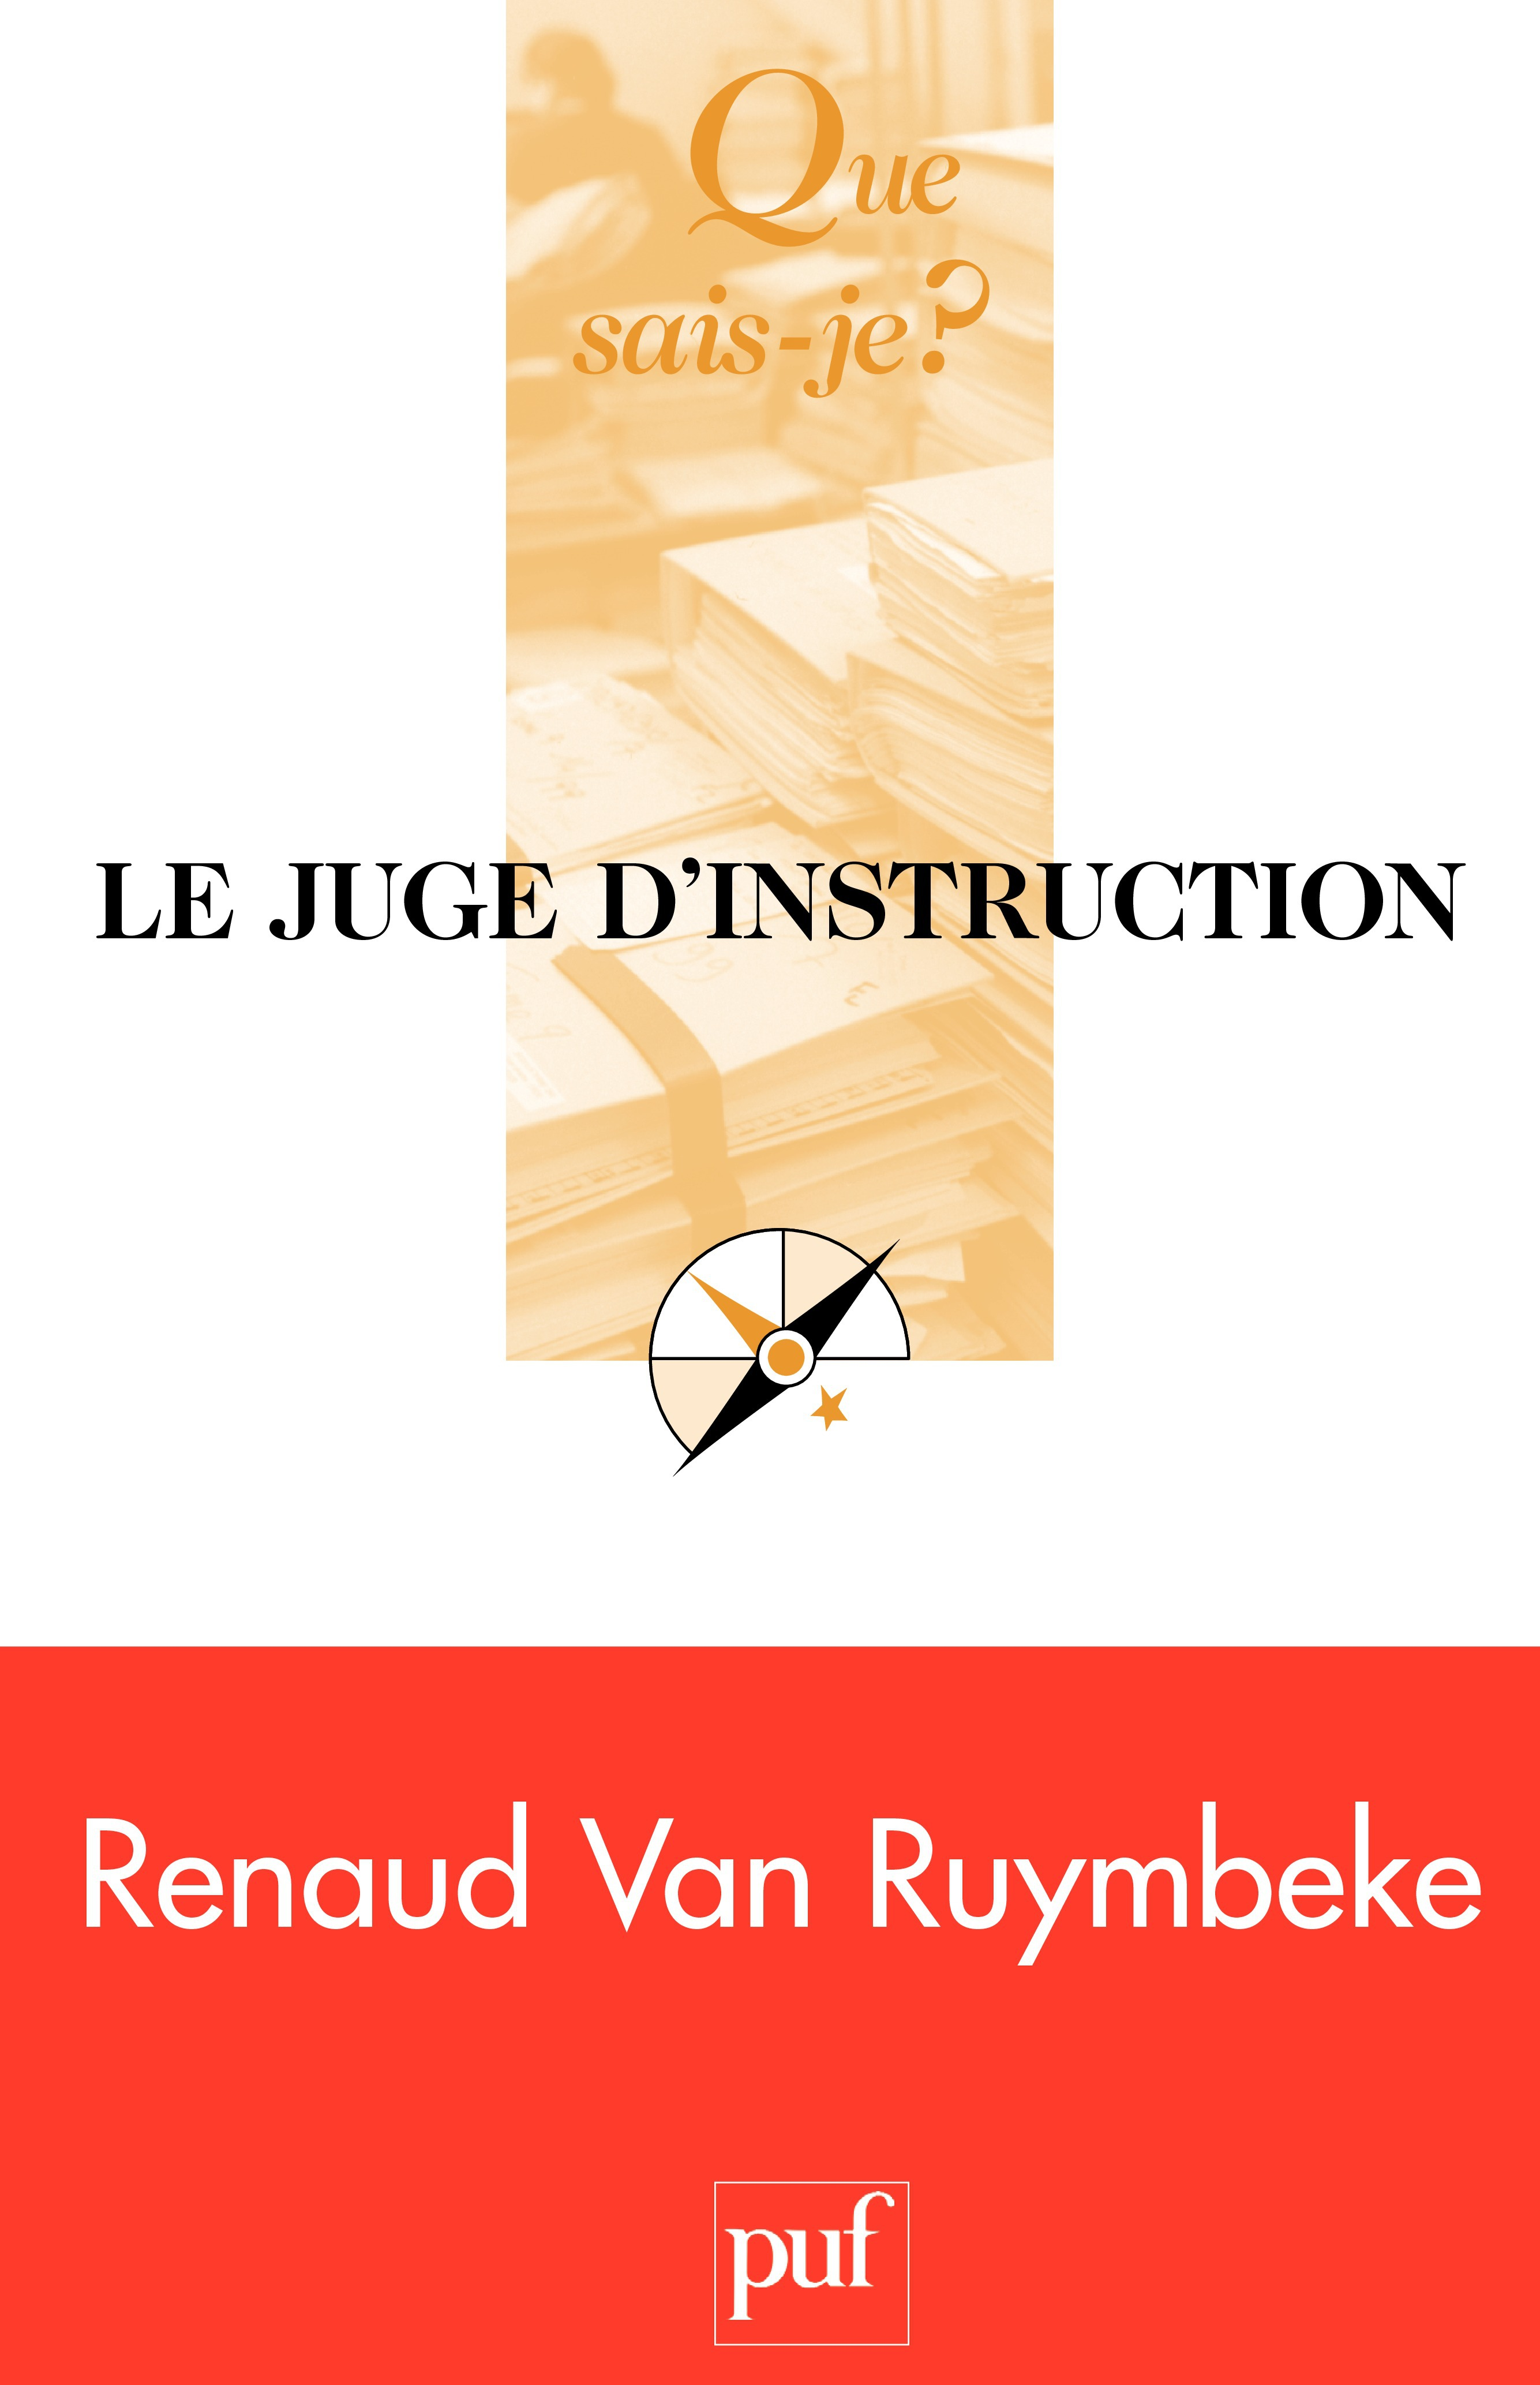 Le juge d'instruction (5e édition)